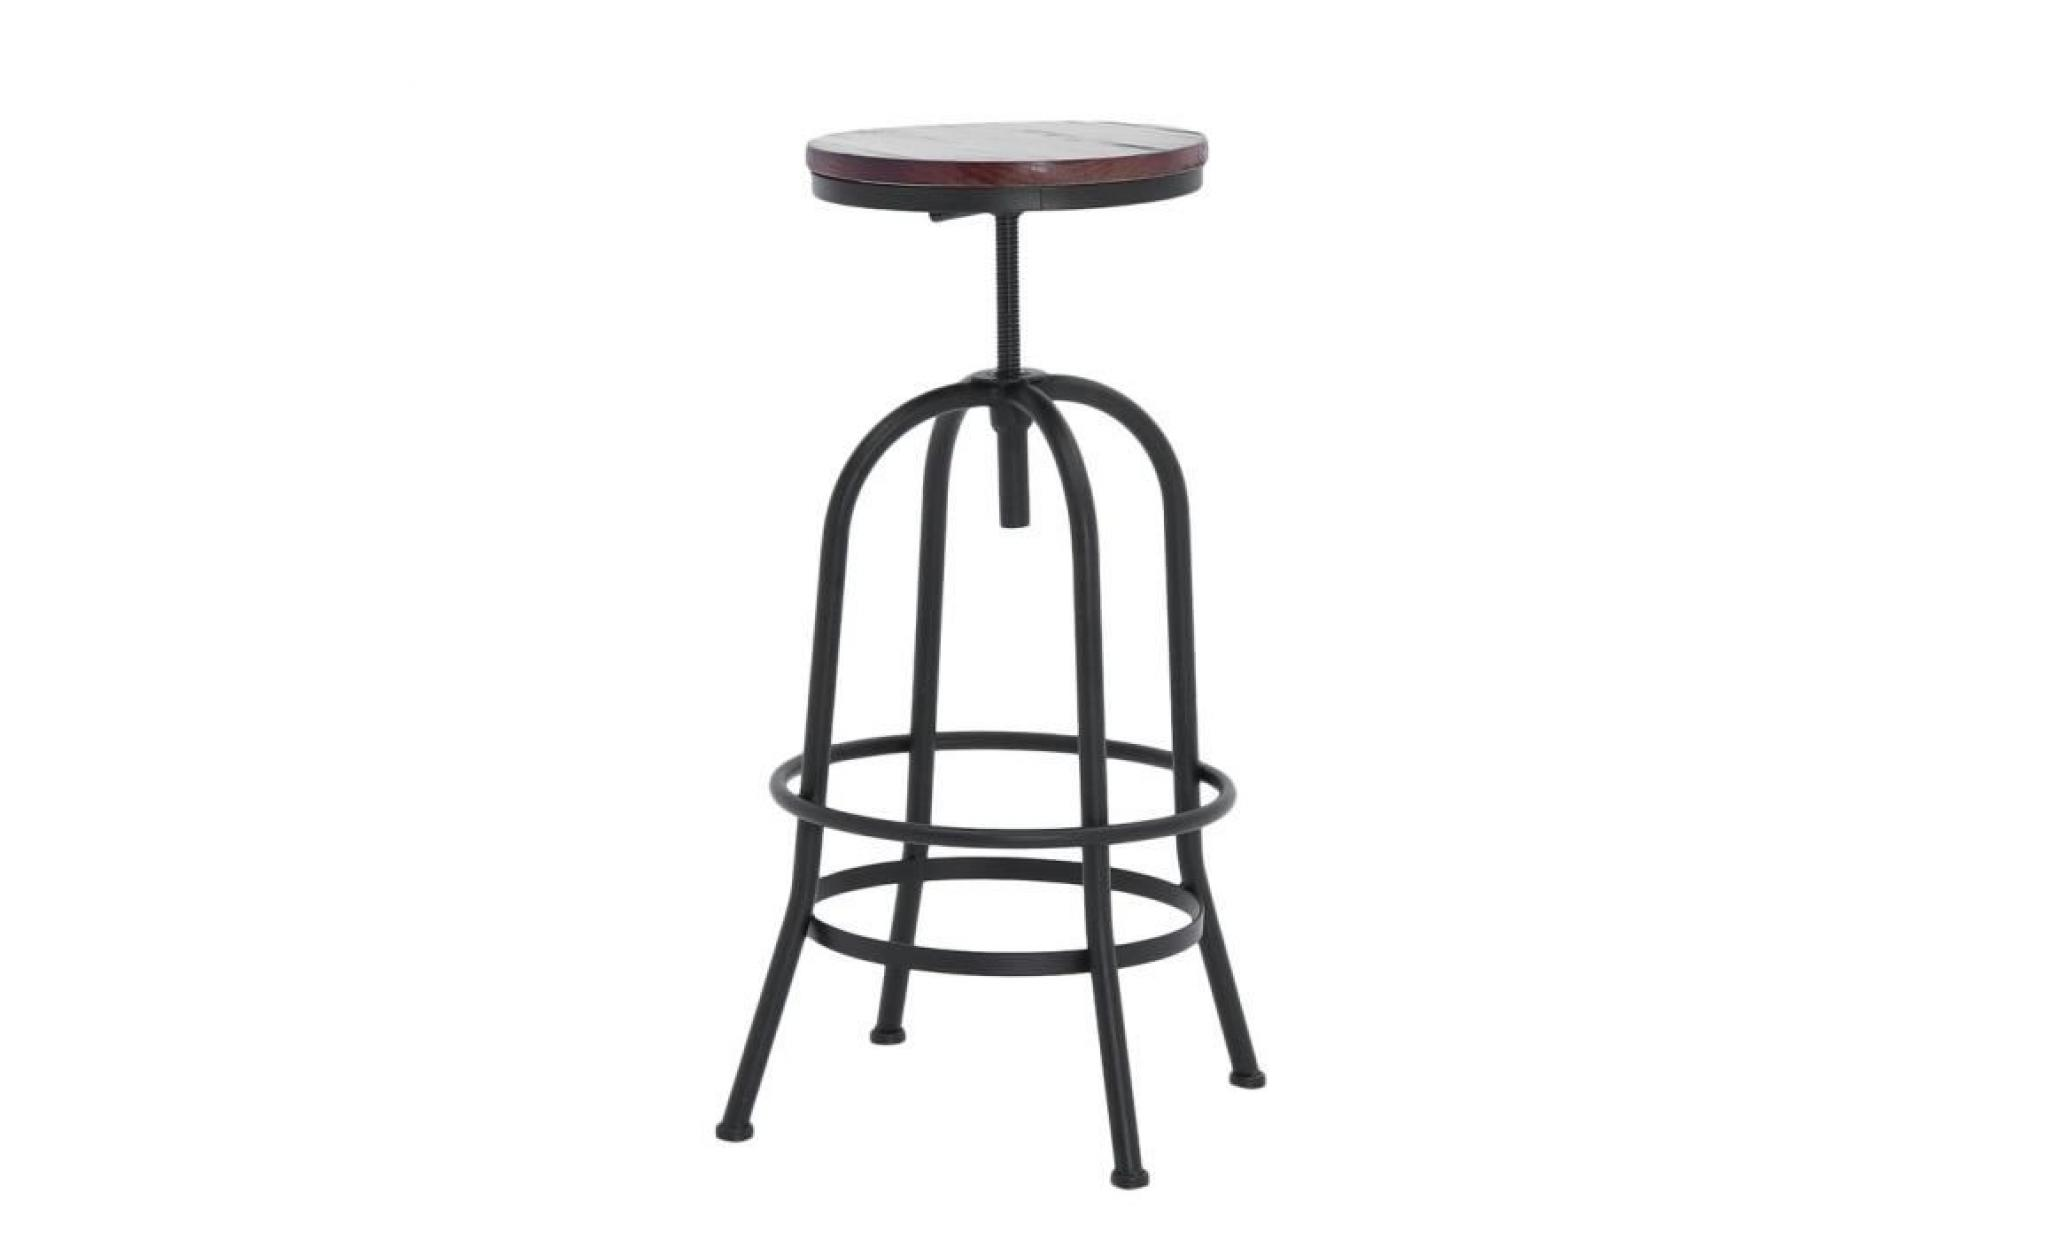 Tabouret De Bar Style Industriel En Bois Et Metal Super Confortable